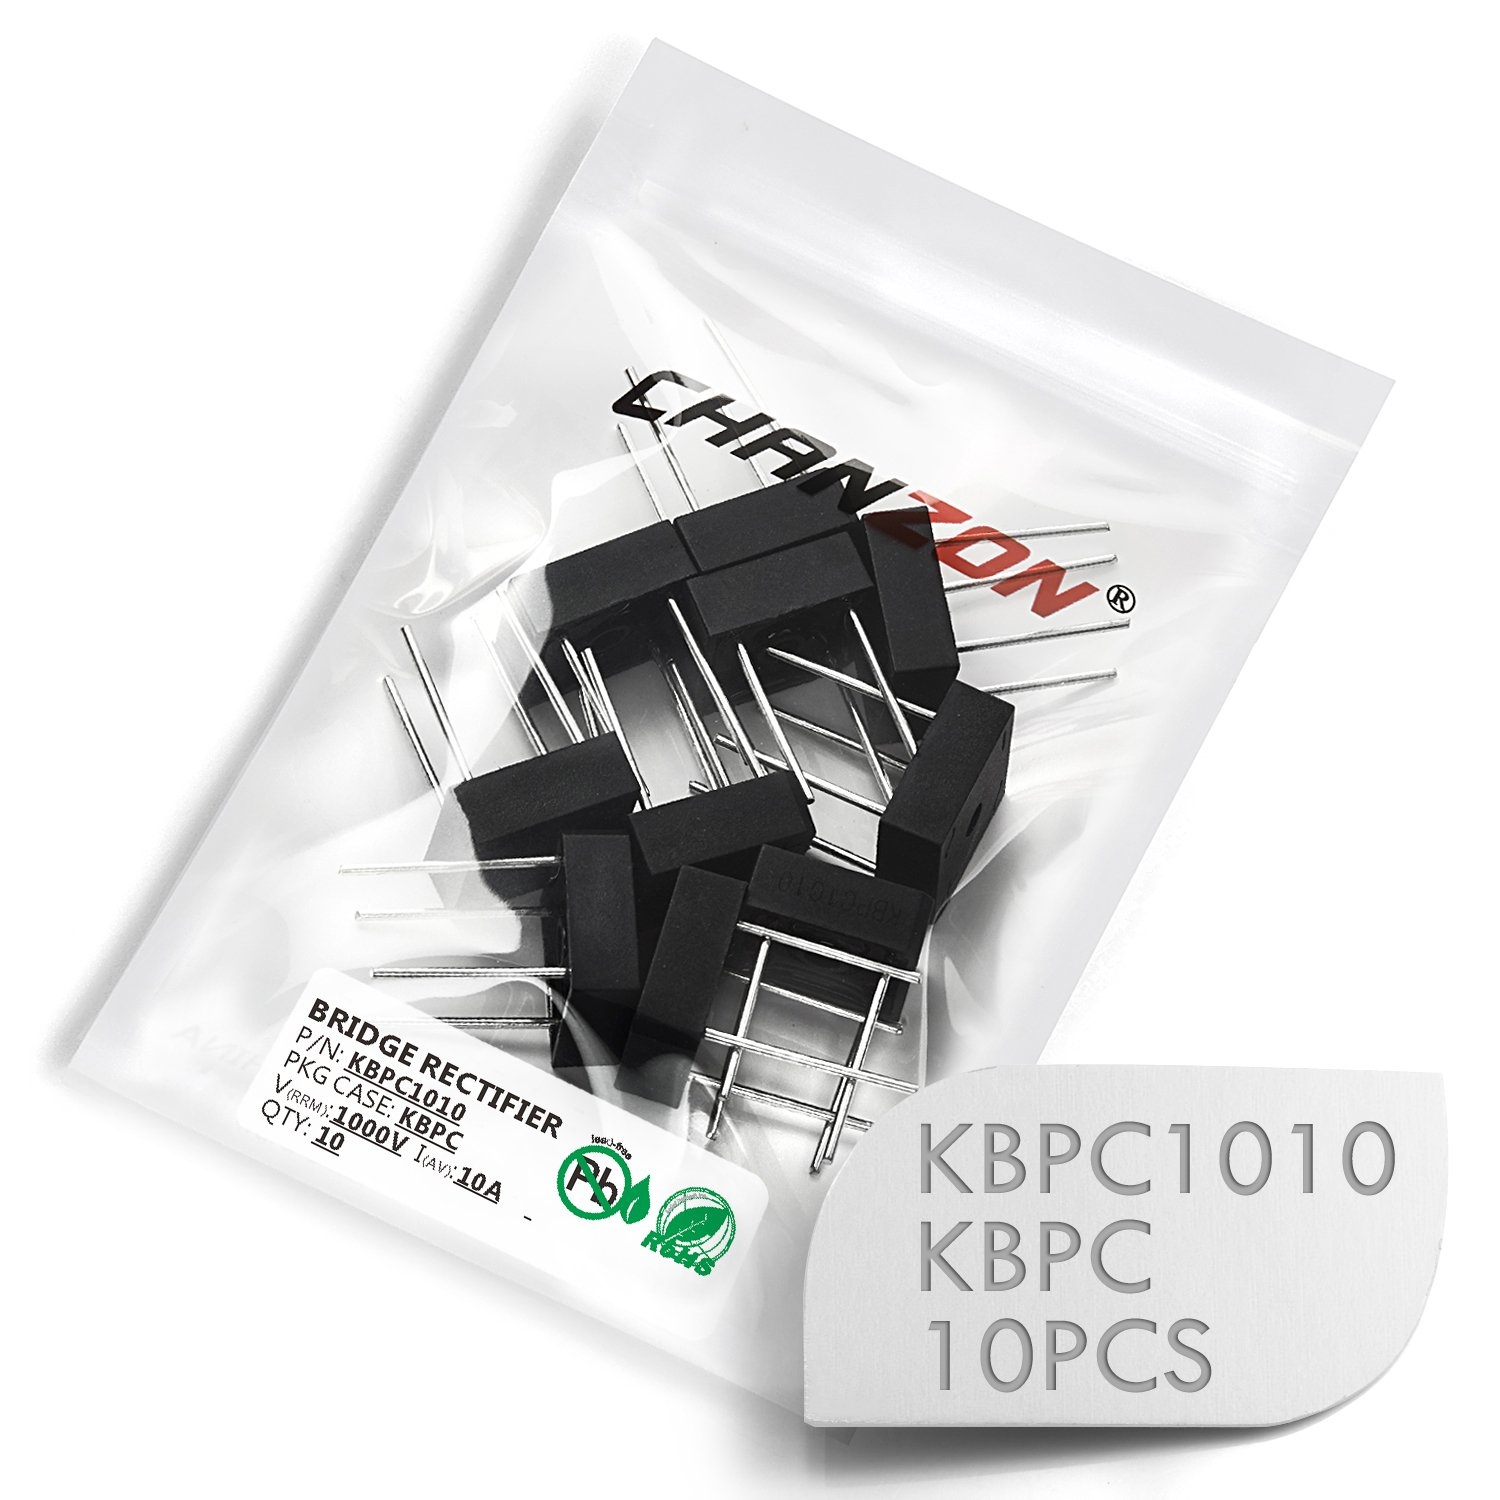 Full Wave 3 Amp 1000 Volt Electronic Silicon Diodes SIP-4 Single Phase Pack of 20 Pieces Chanzon KBP310 Bridge Rectifier Diode 3A 1000V KBP-4